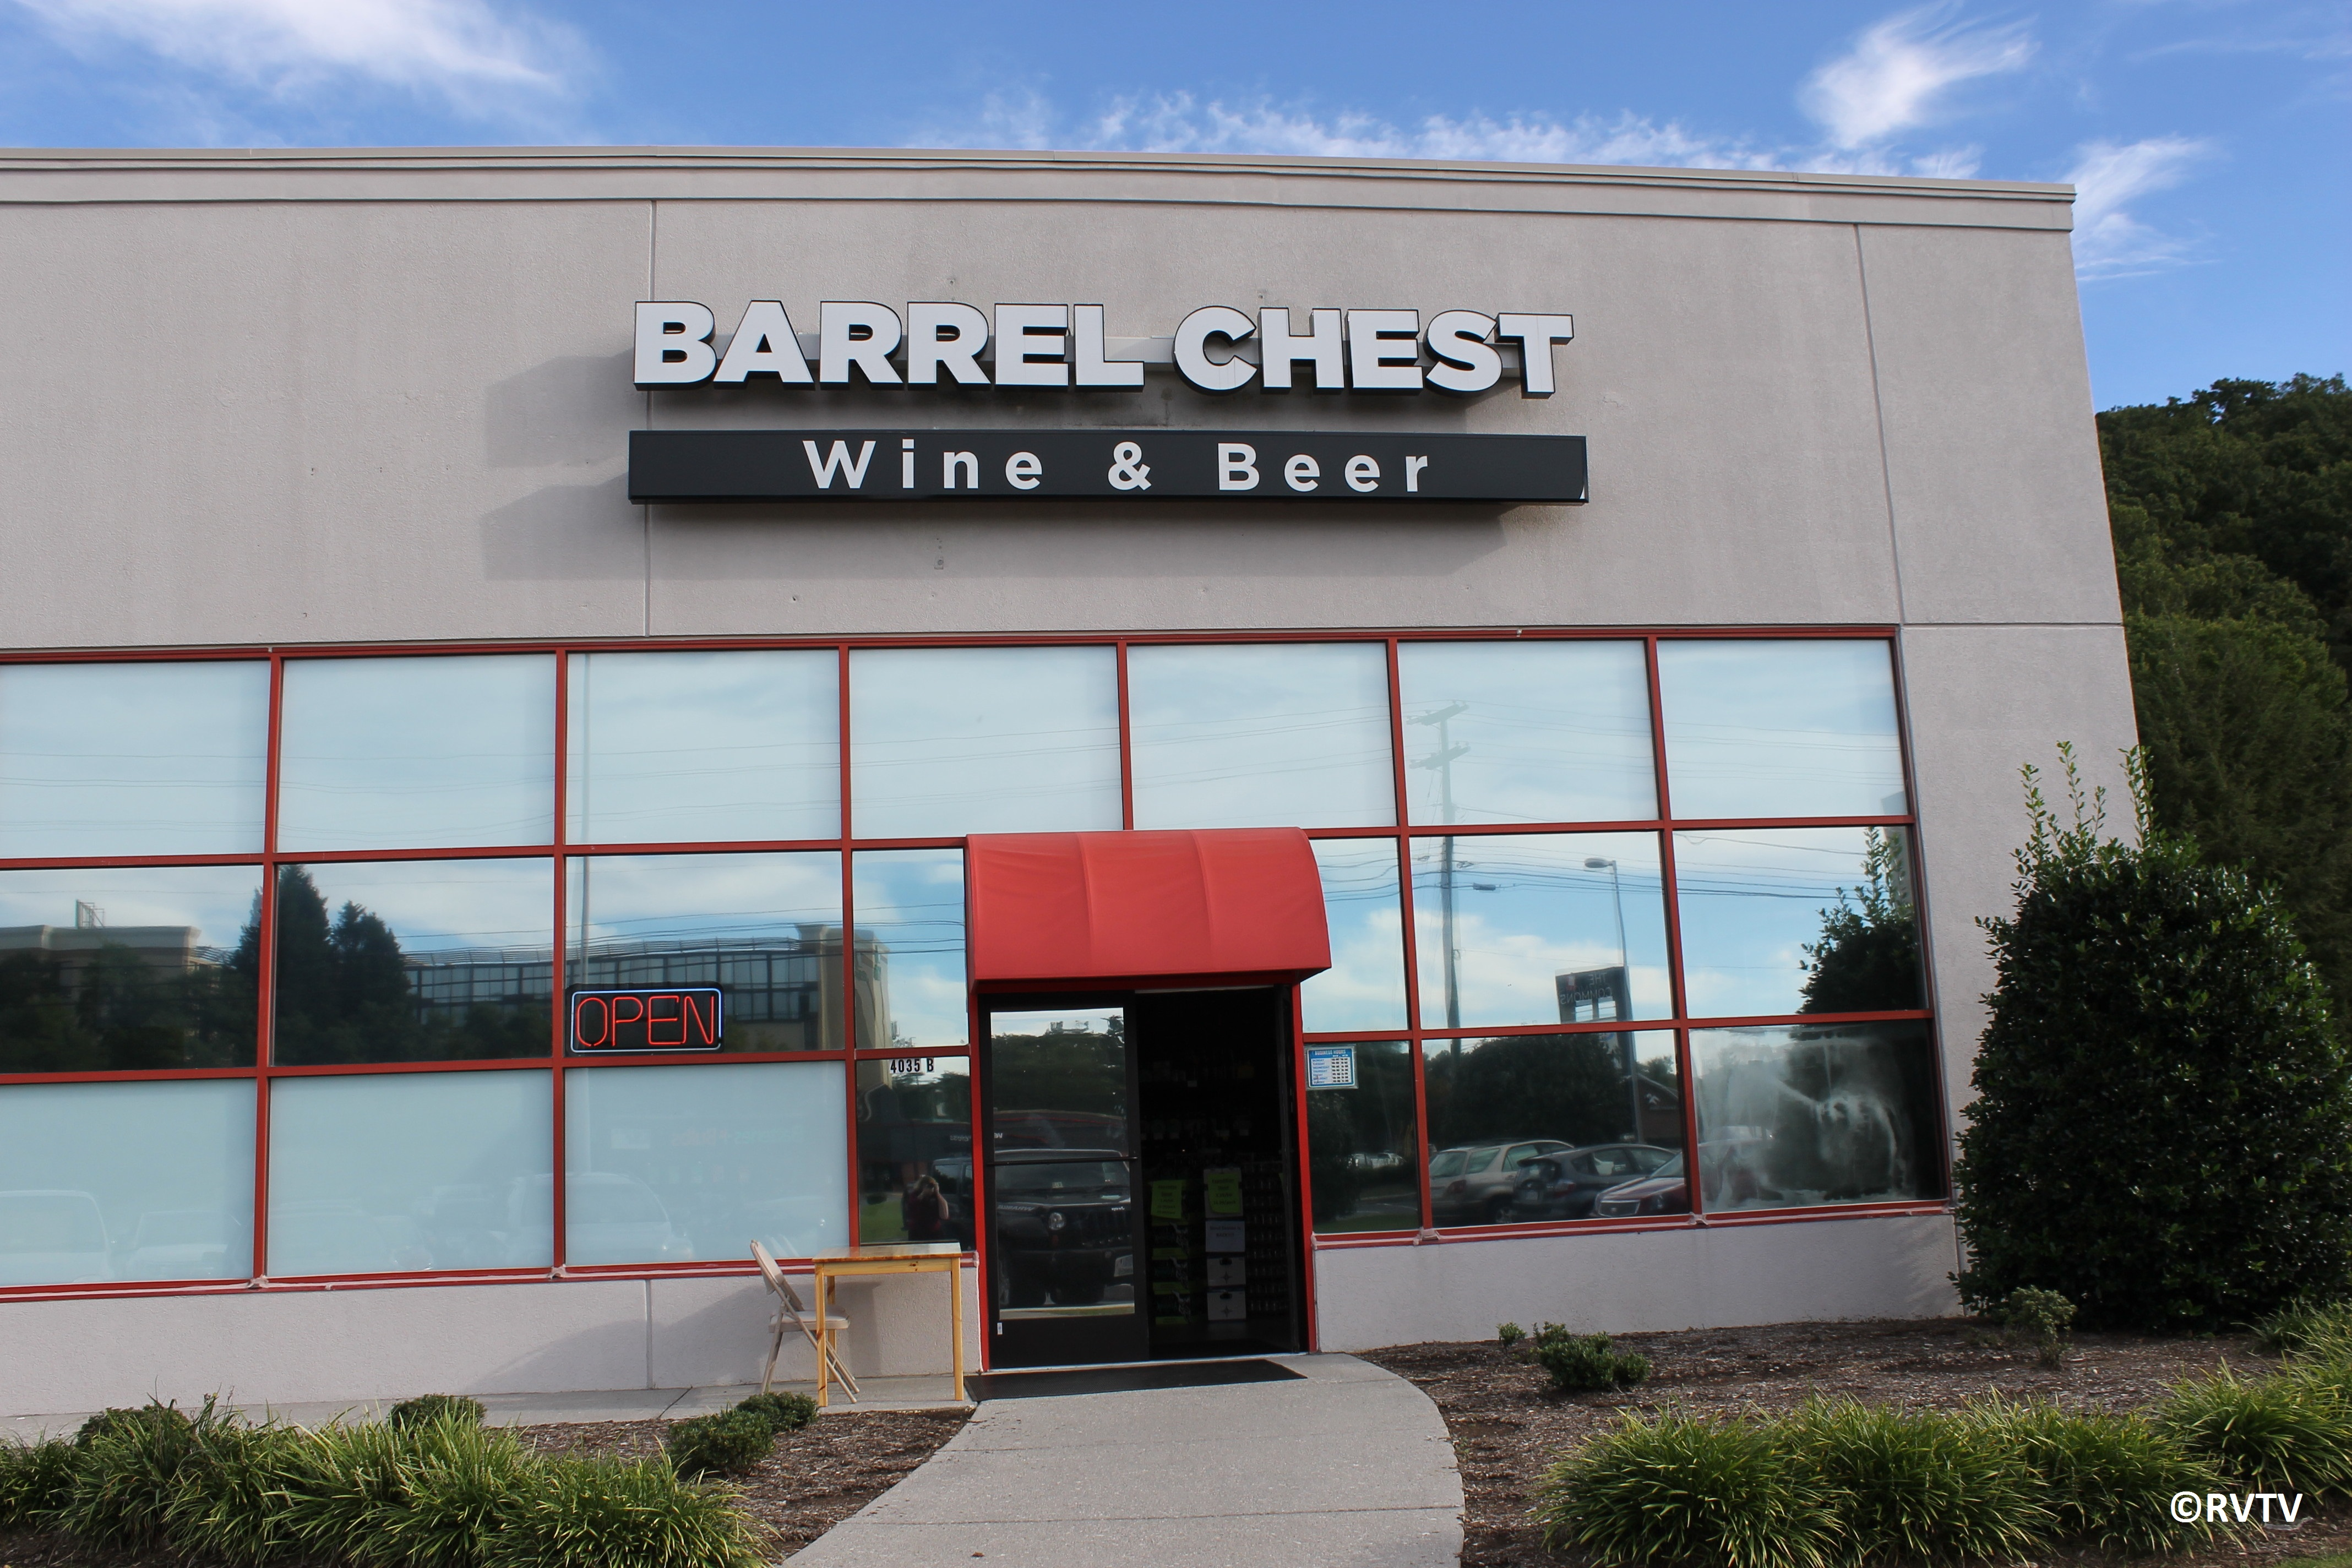 Planning Night at Barrel Chest 10/11/16